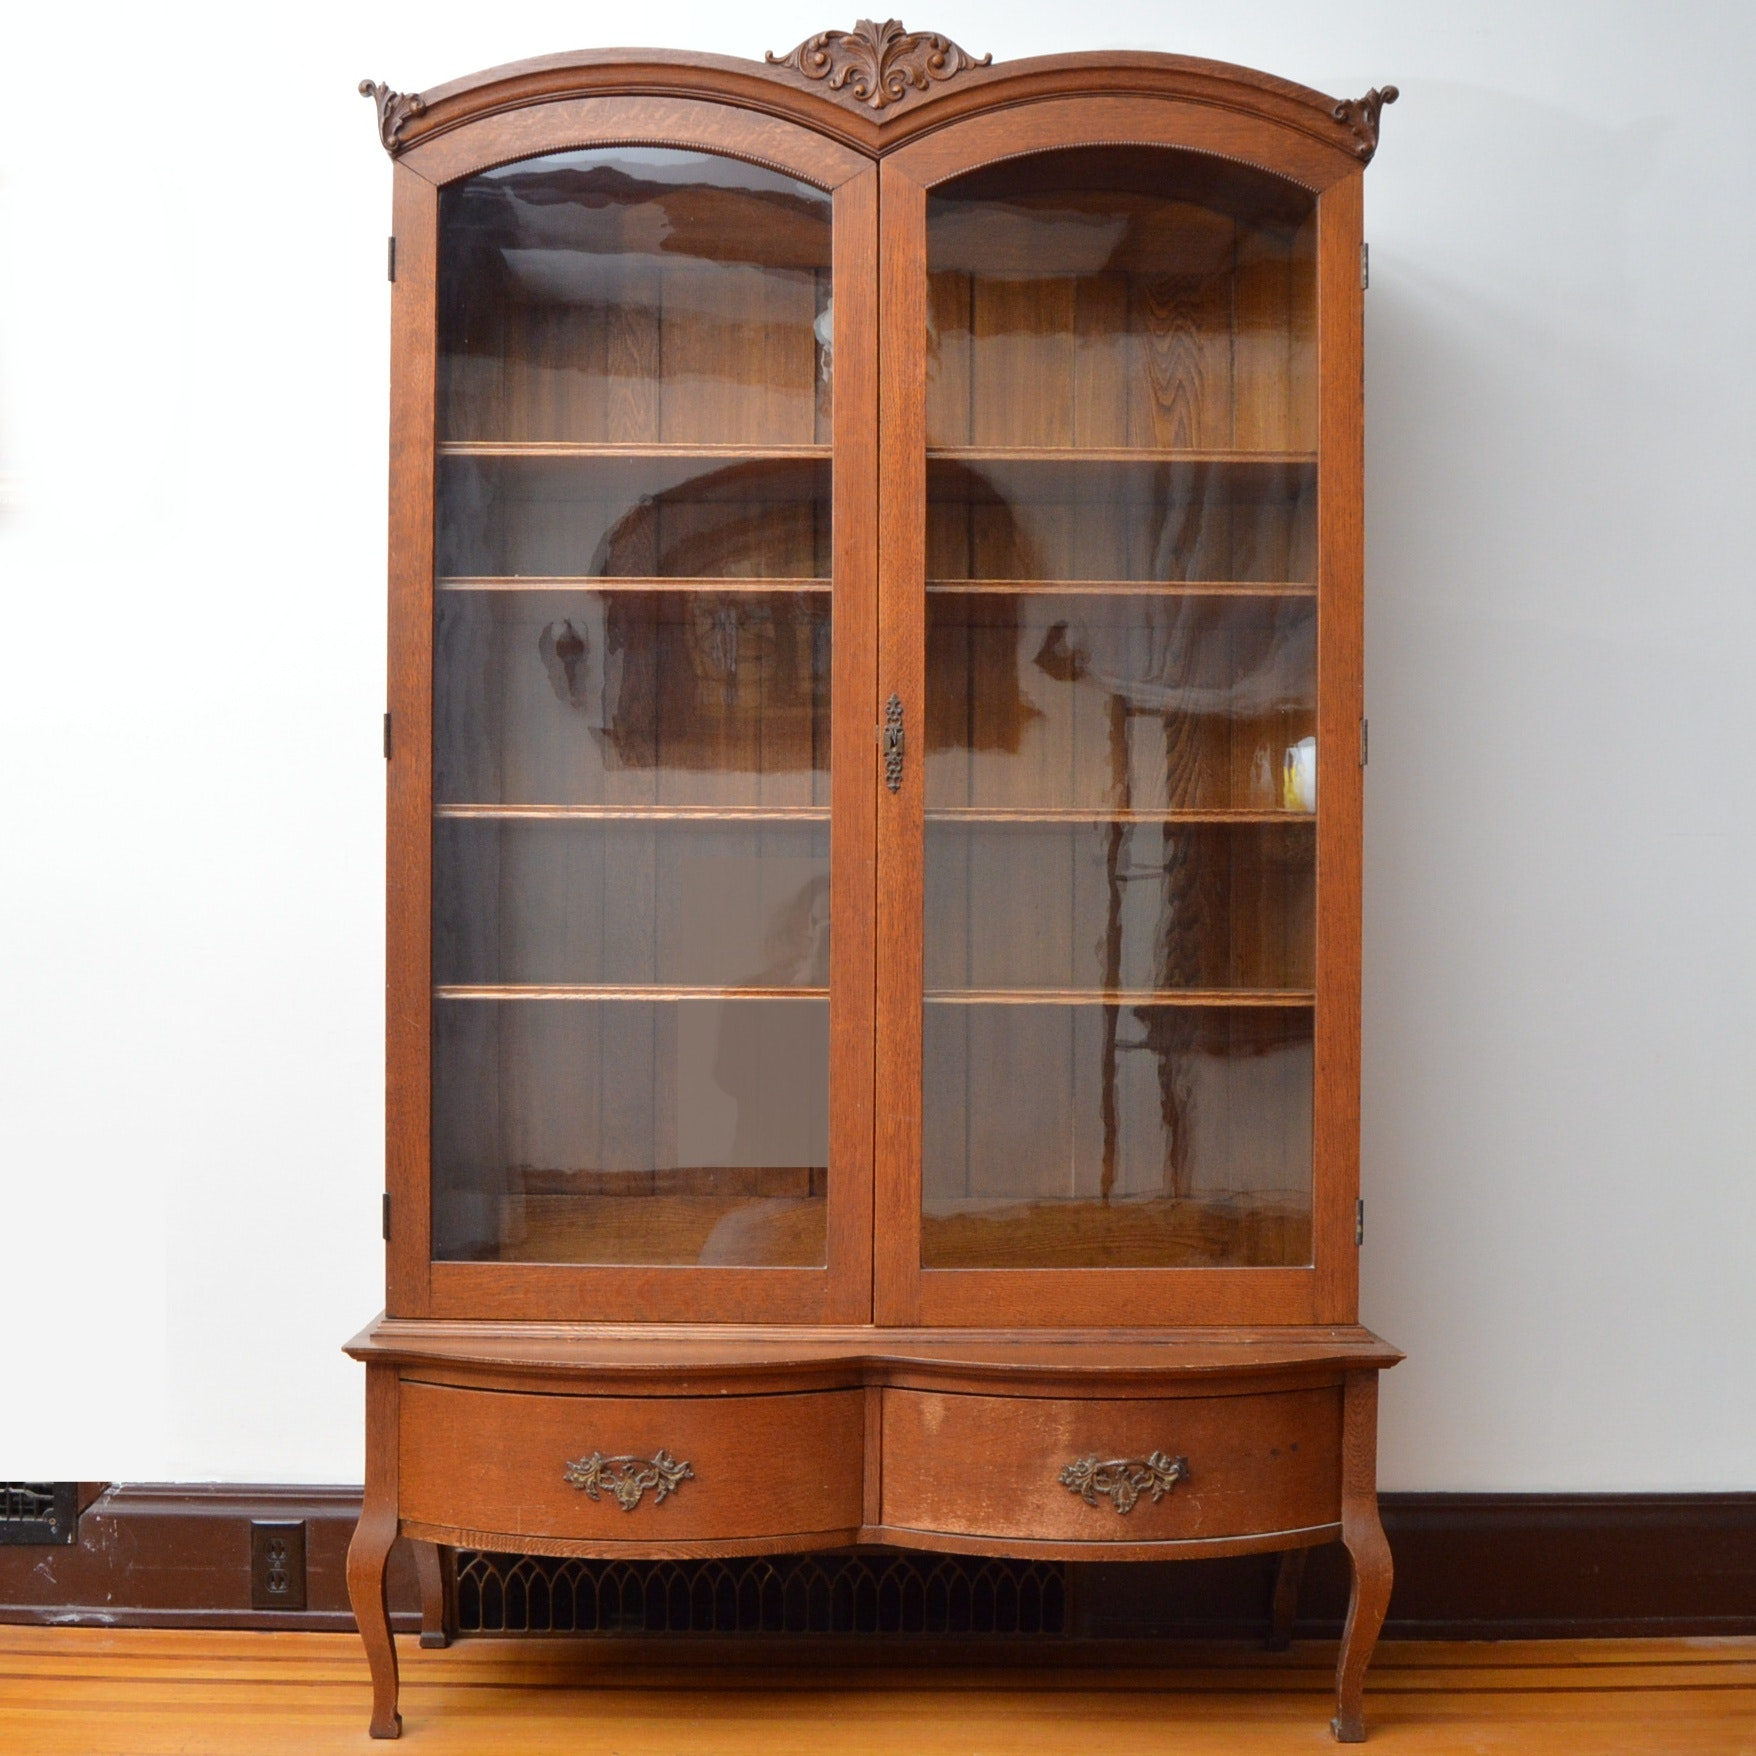 Late 19th-Early 20th Century Golden Oak Bookcase